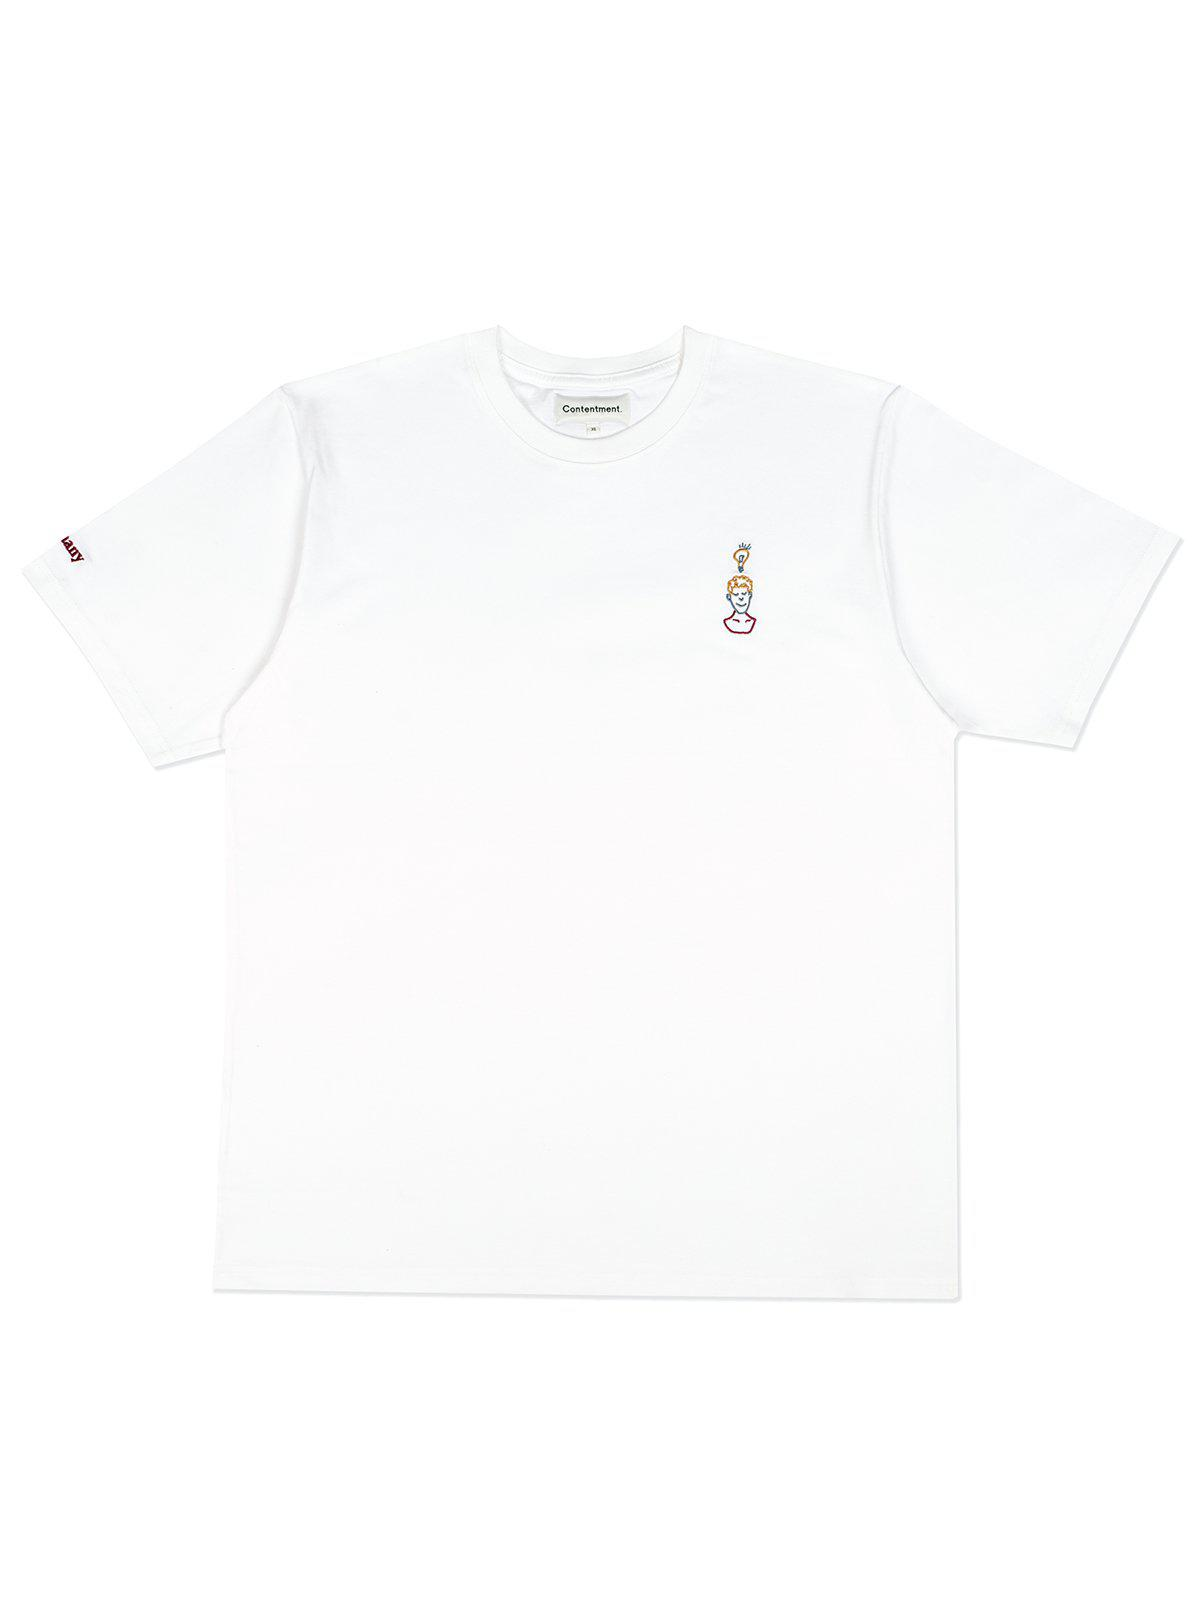 Contentment. EUREKA Embroidery T-Shirt White - MORE by Morello Indonesia